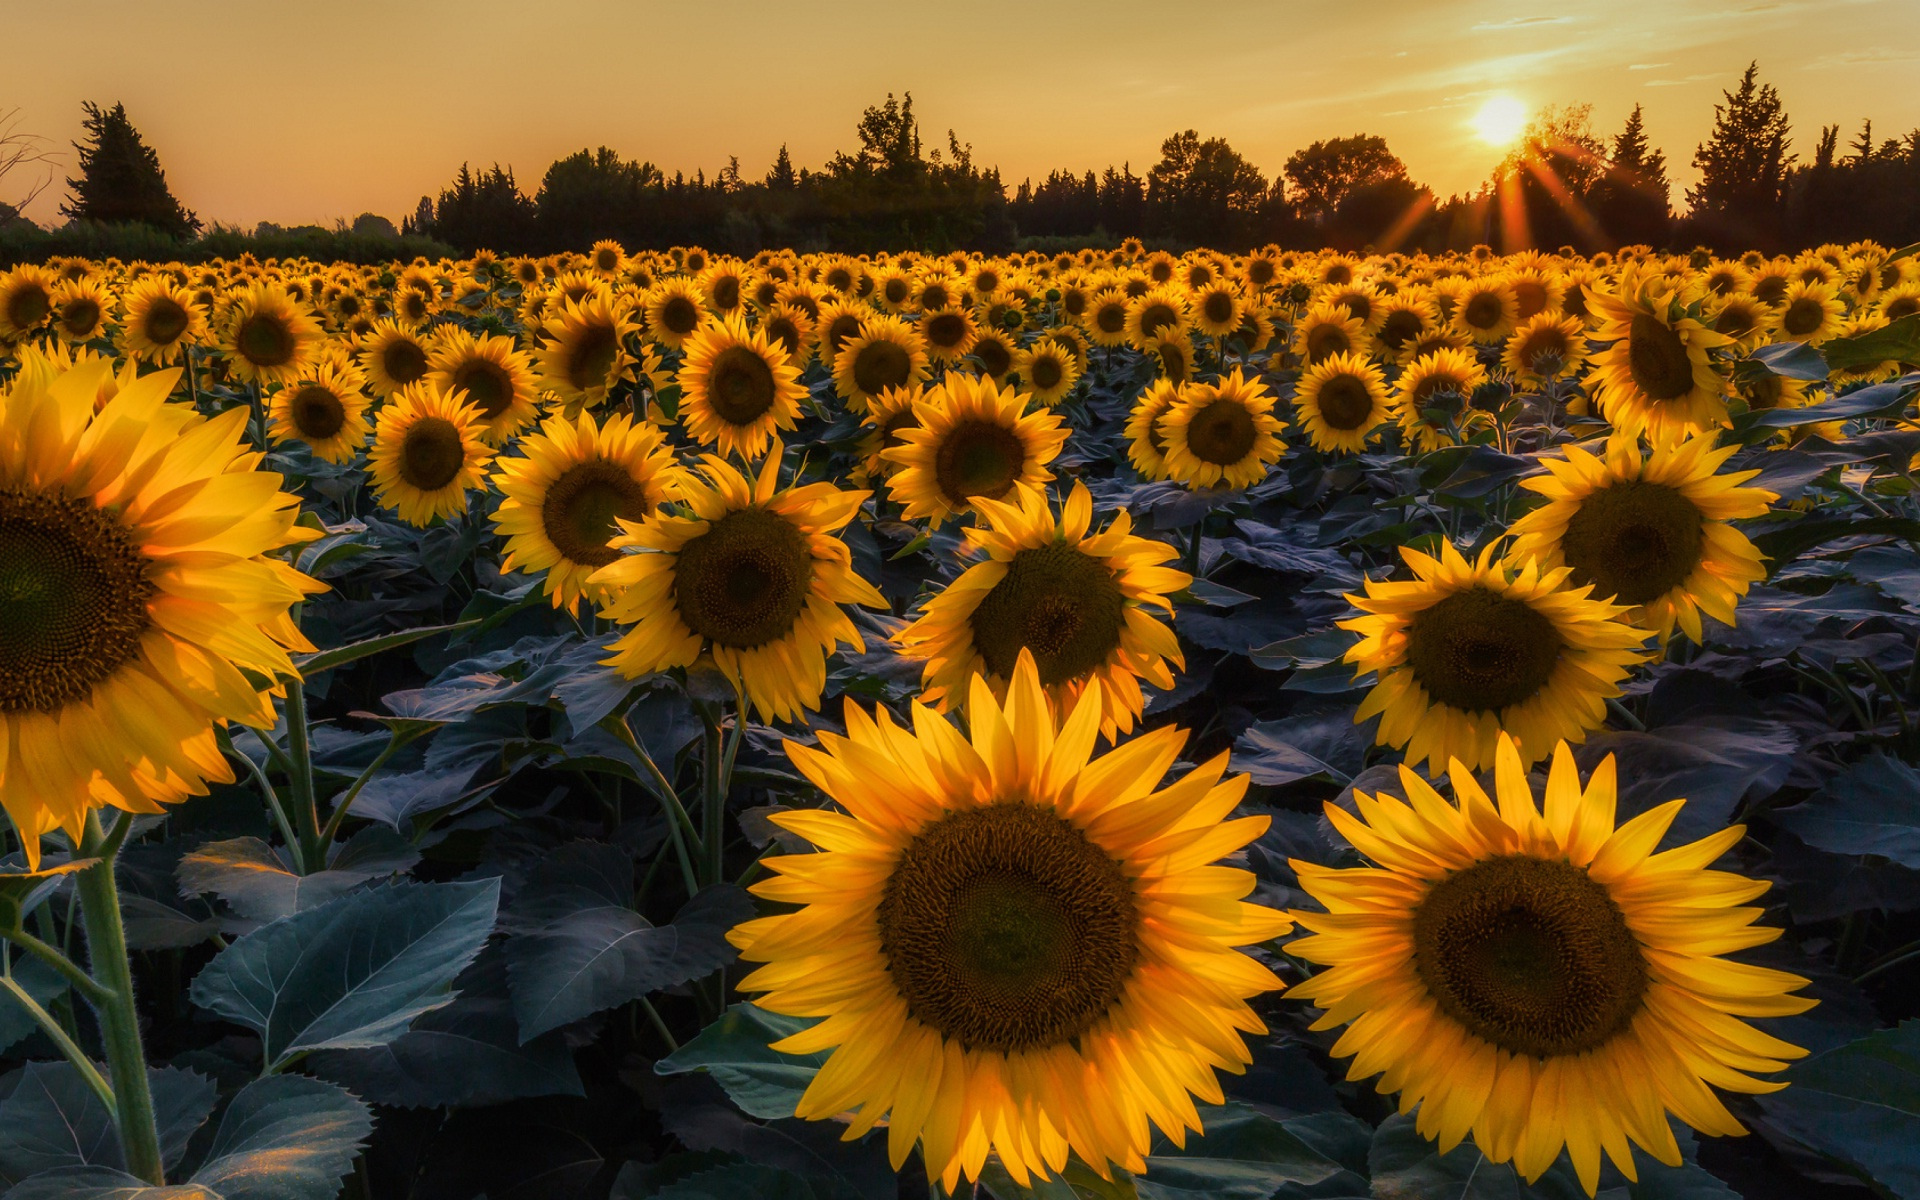 images of sunflowers wallpapers 52 wallpapers � adorable